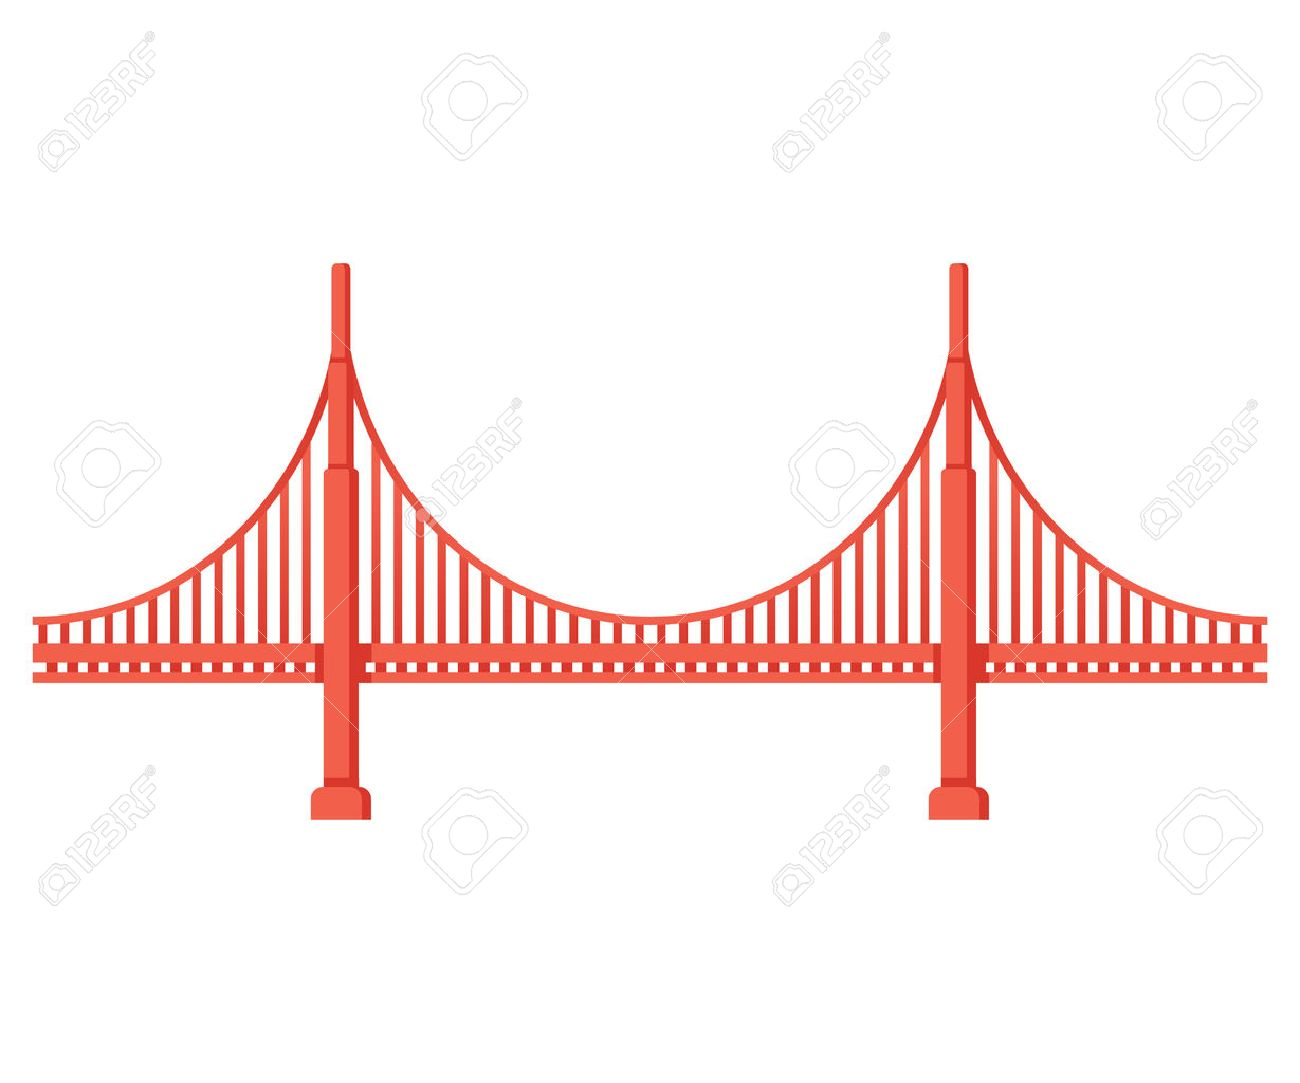 golden gate bridge vector illustrator file. ponte golden gate \u2014 vetores de stock © joeiera #8898564 bridge vector illustrator file